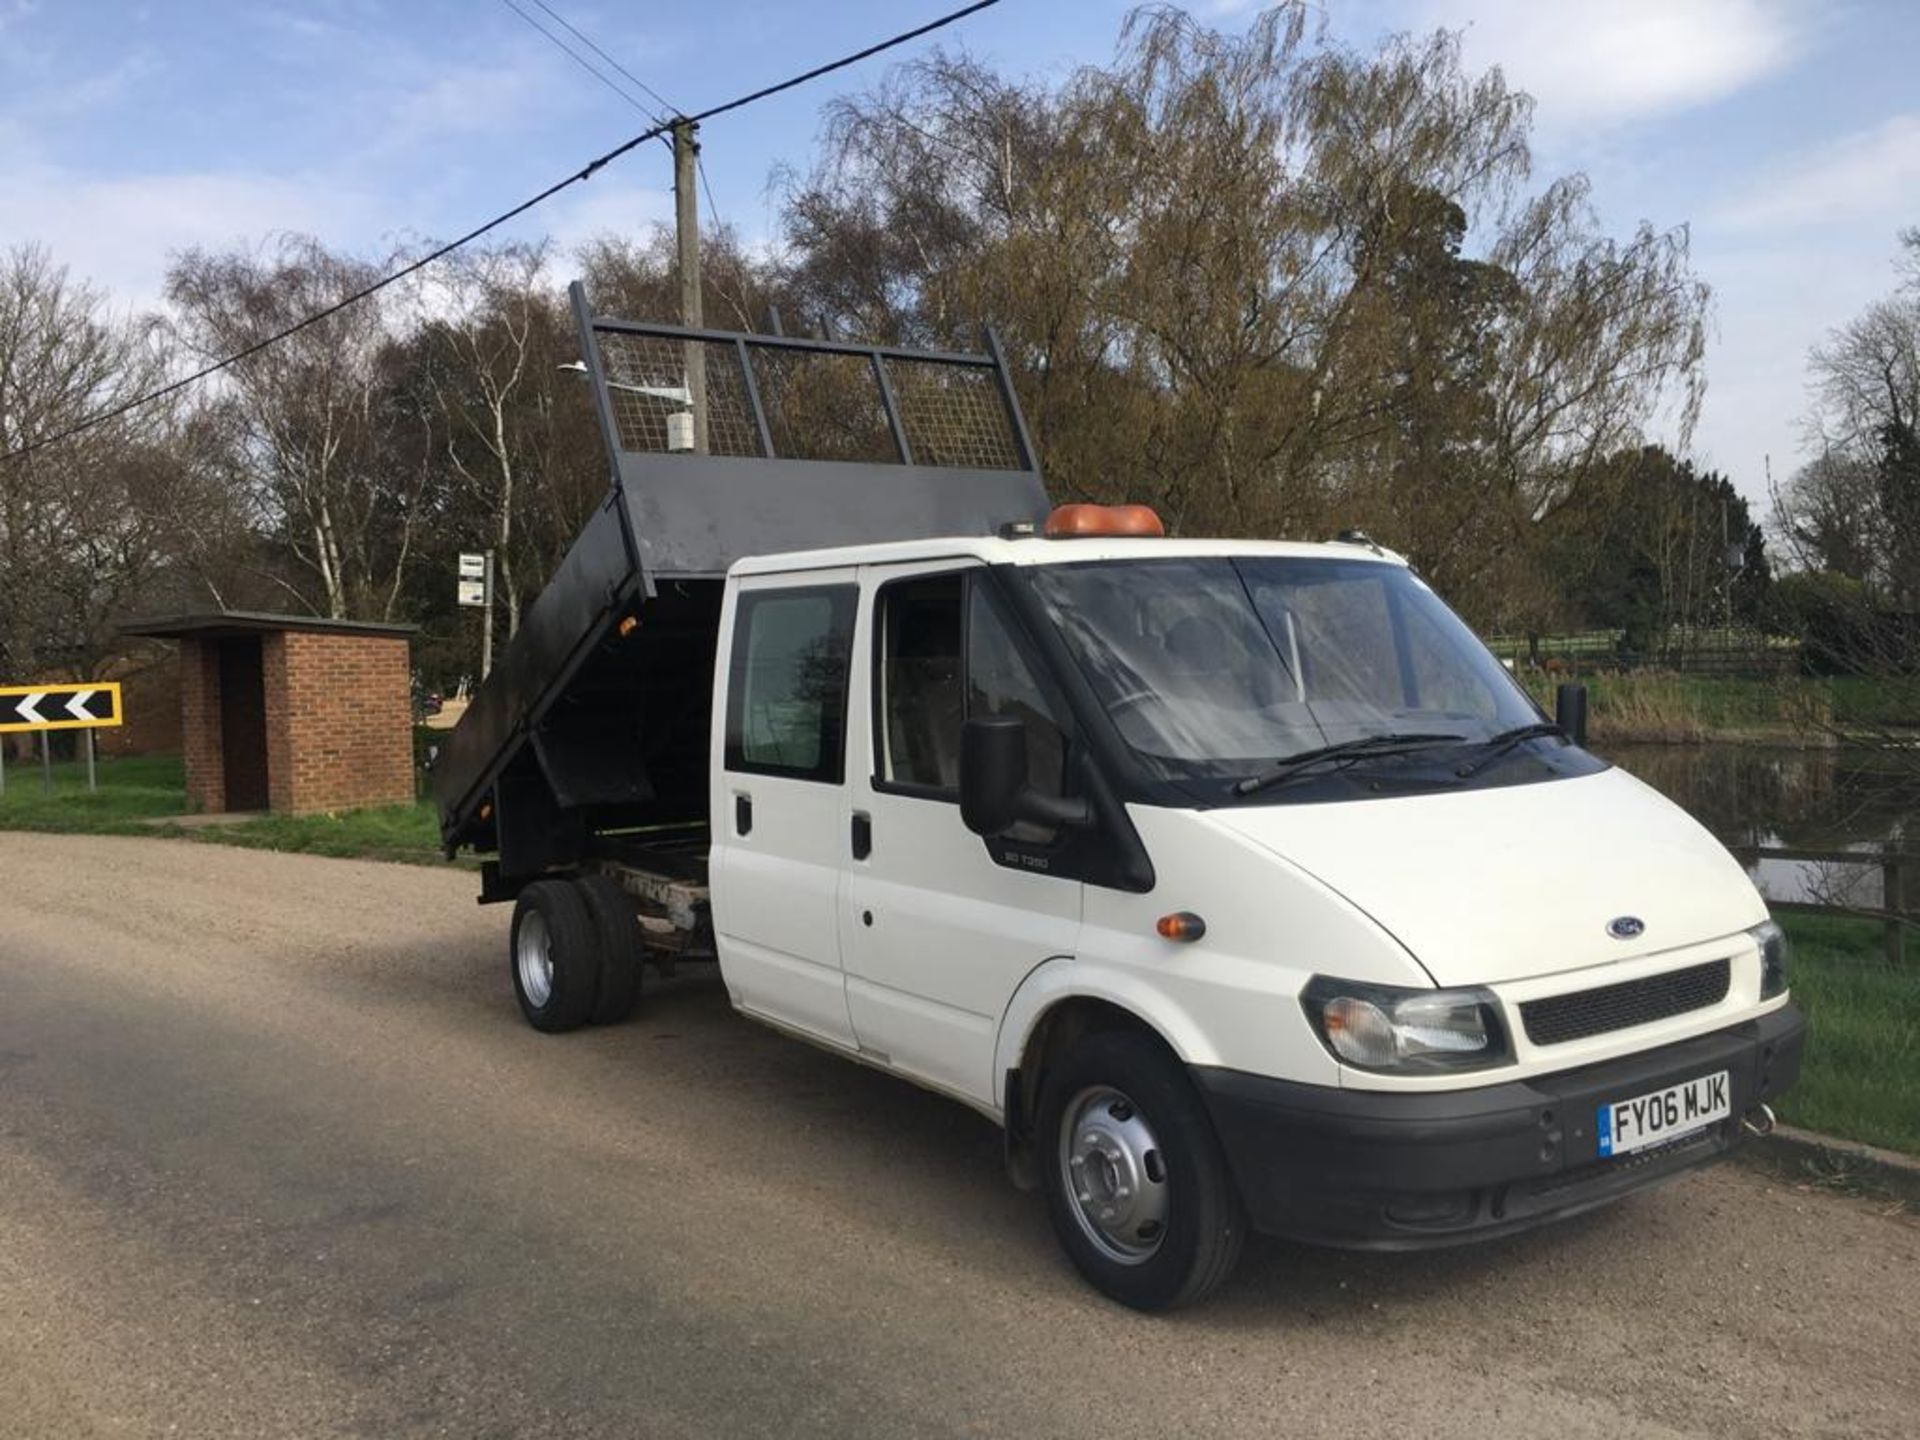 2006 FORD TRANSIT DOUBLE CAB TIPPER - Image 4 of 22